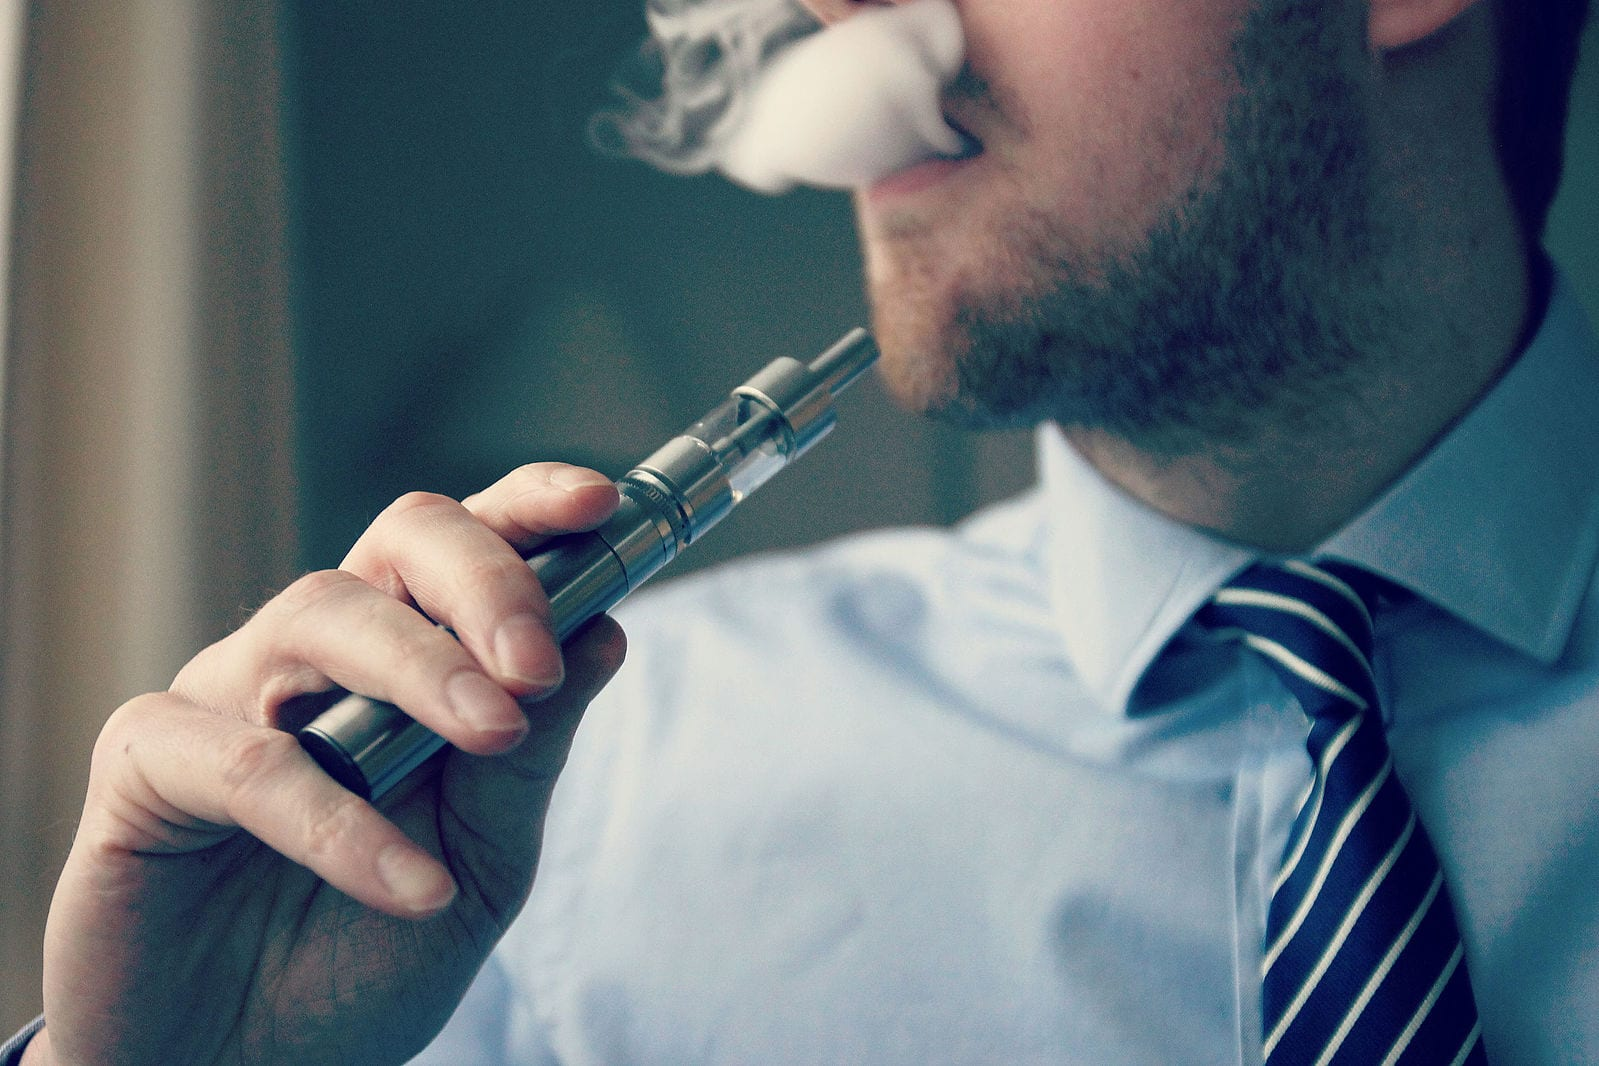 Illicit THC vapes main cause of lung illness, or EVALI, says CDC